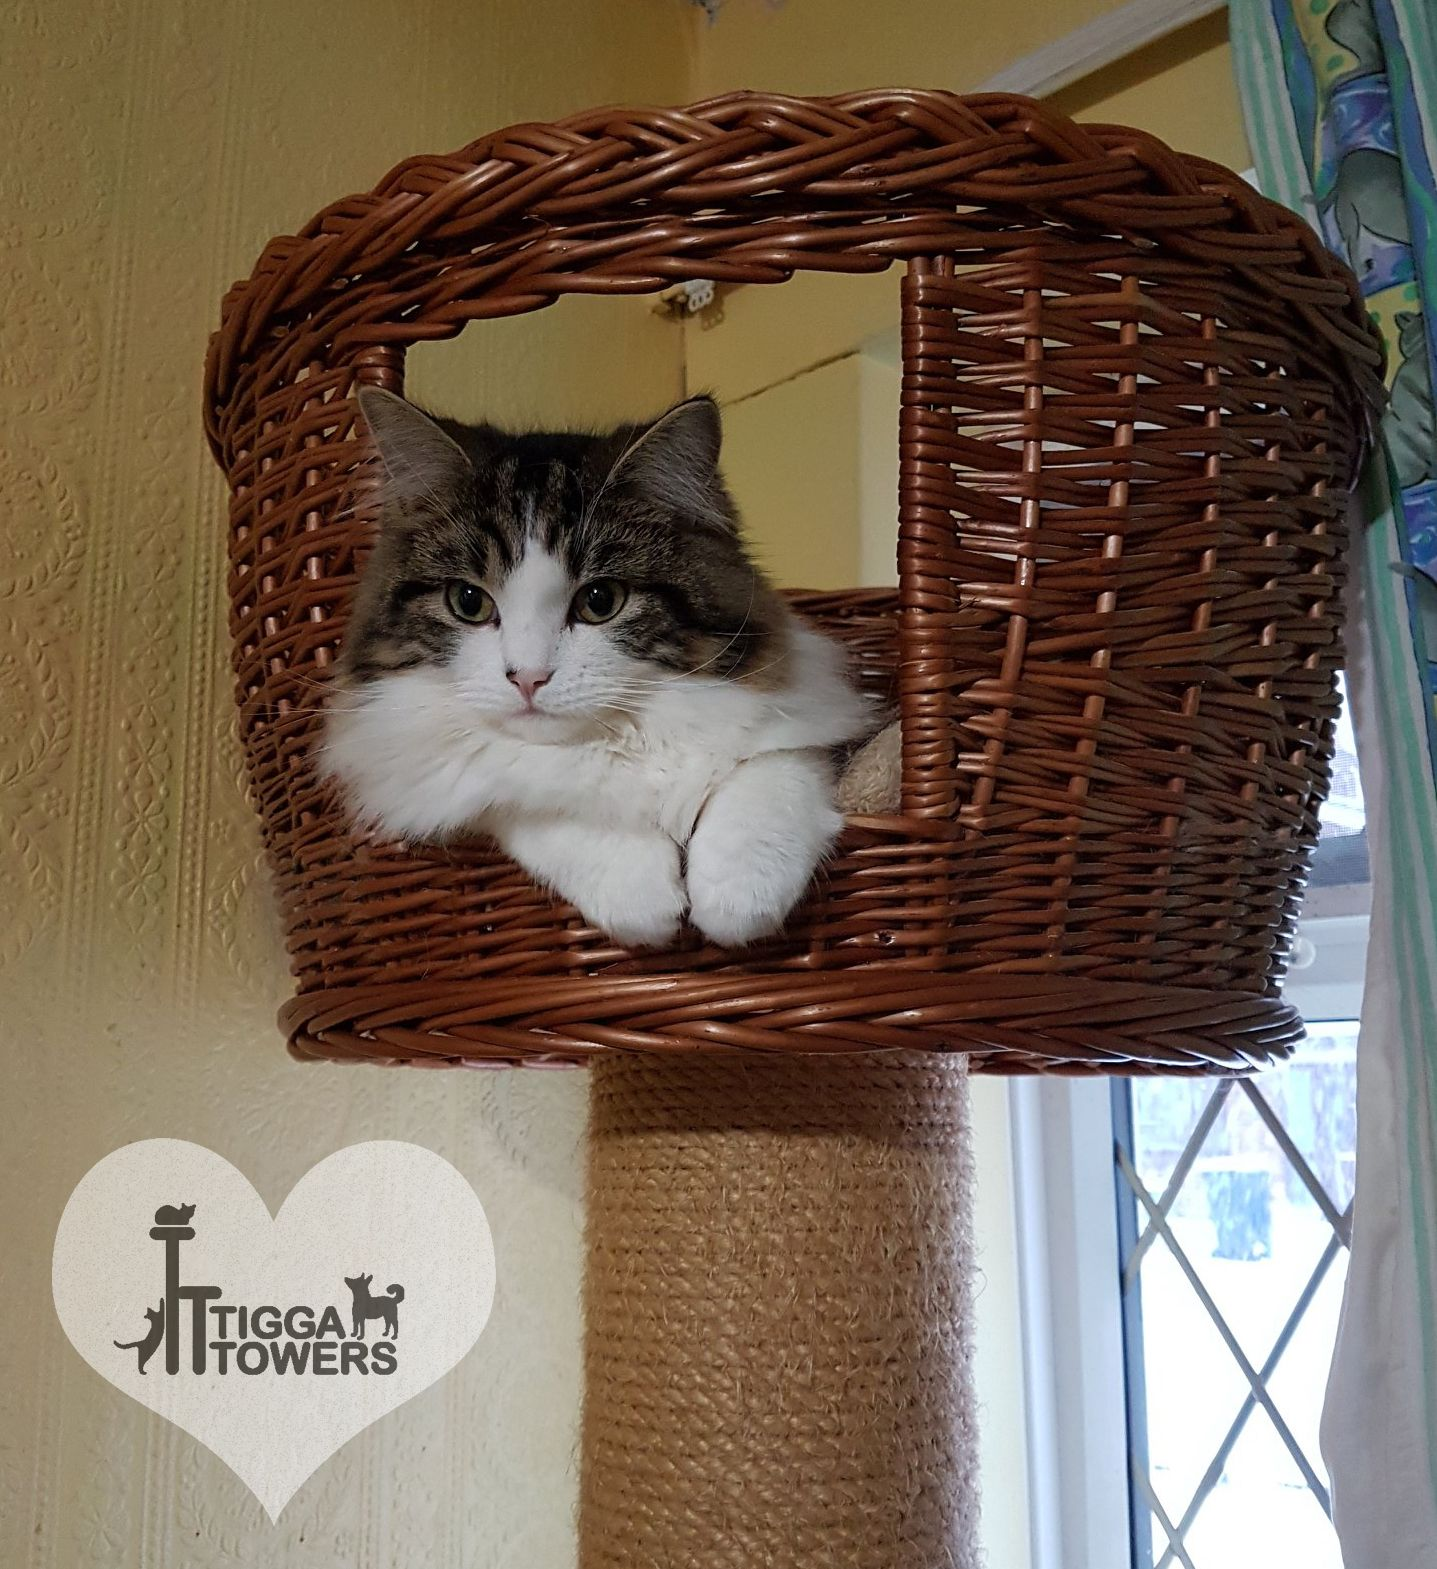 This Very Pretty Kitty Cat At The Top Of Its Cat Tower Is Our